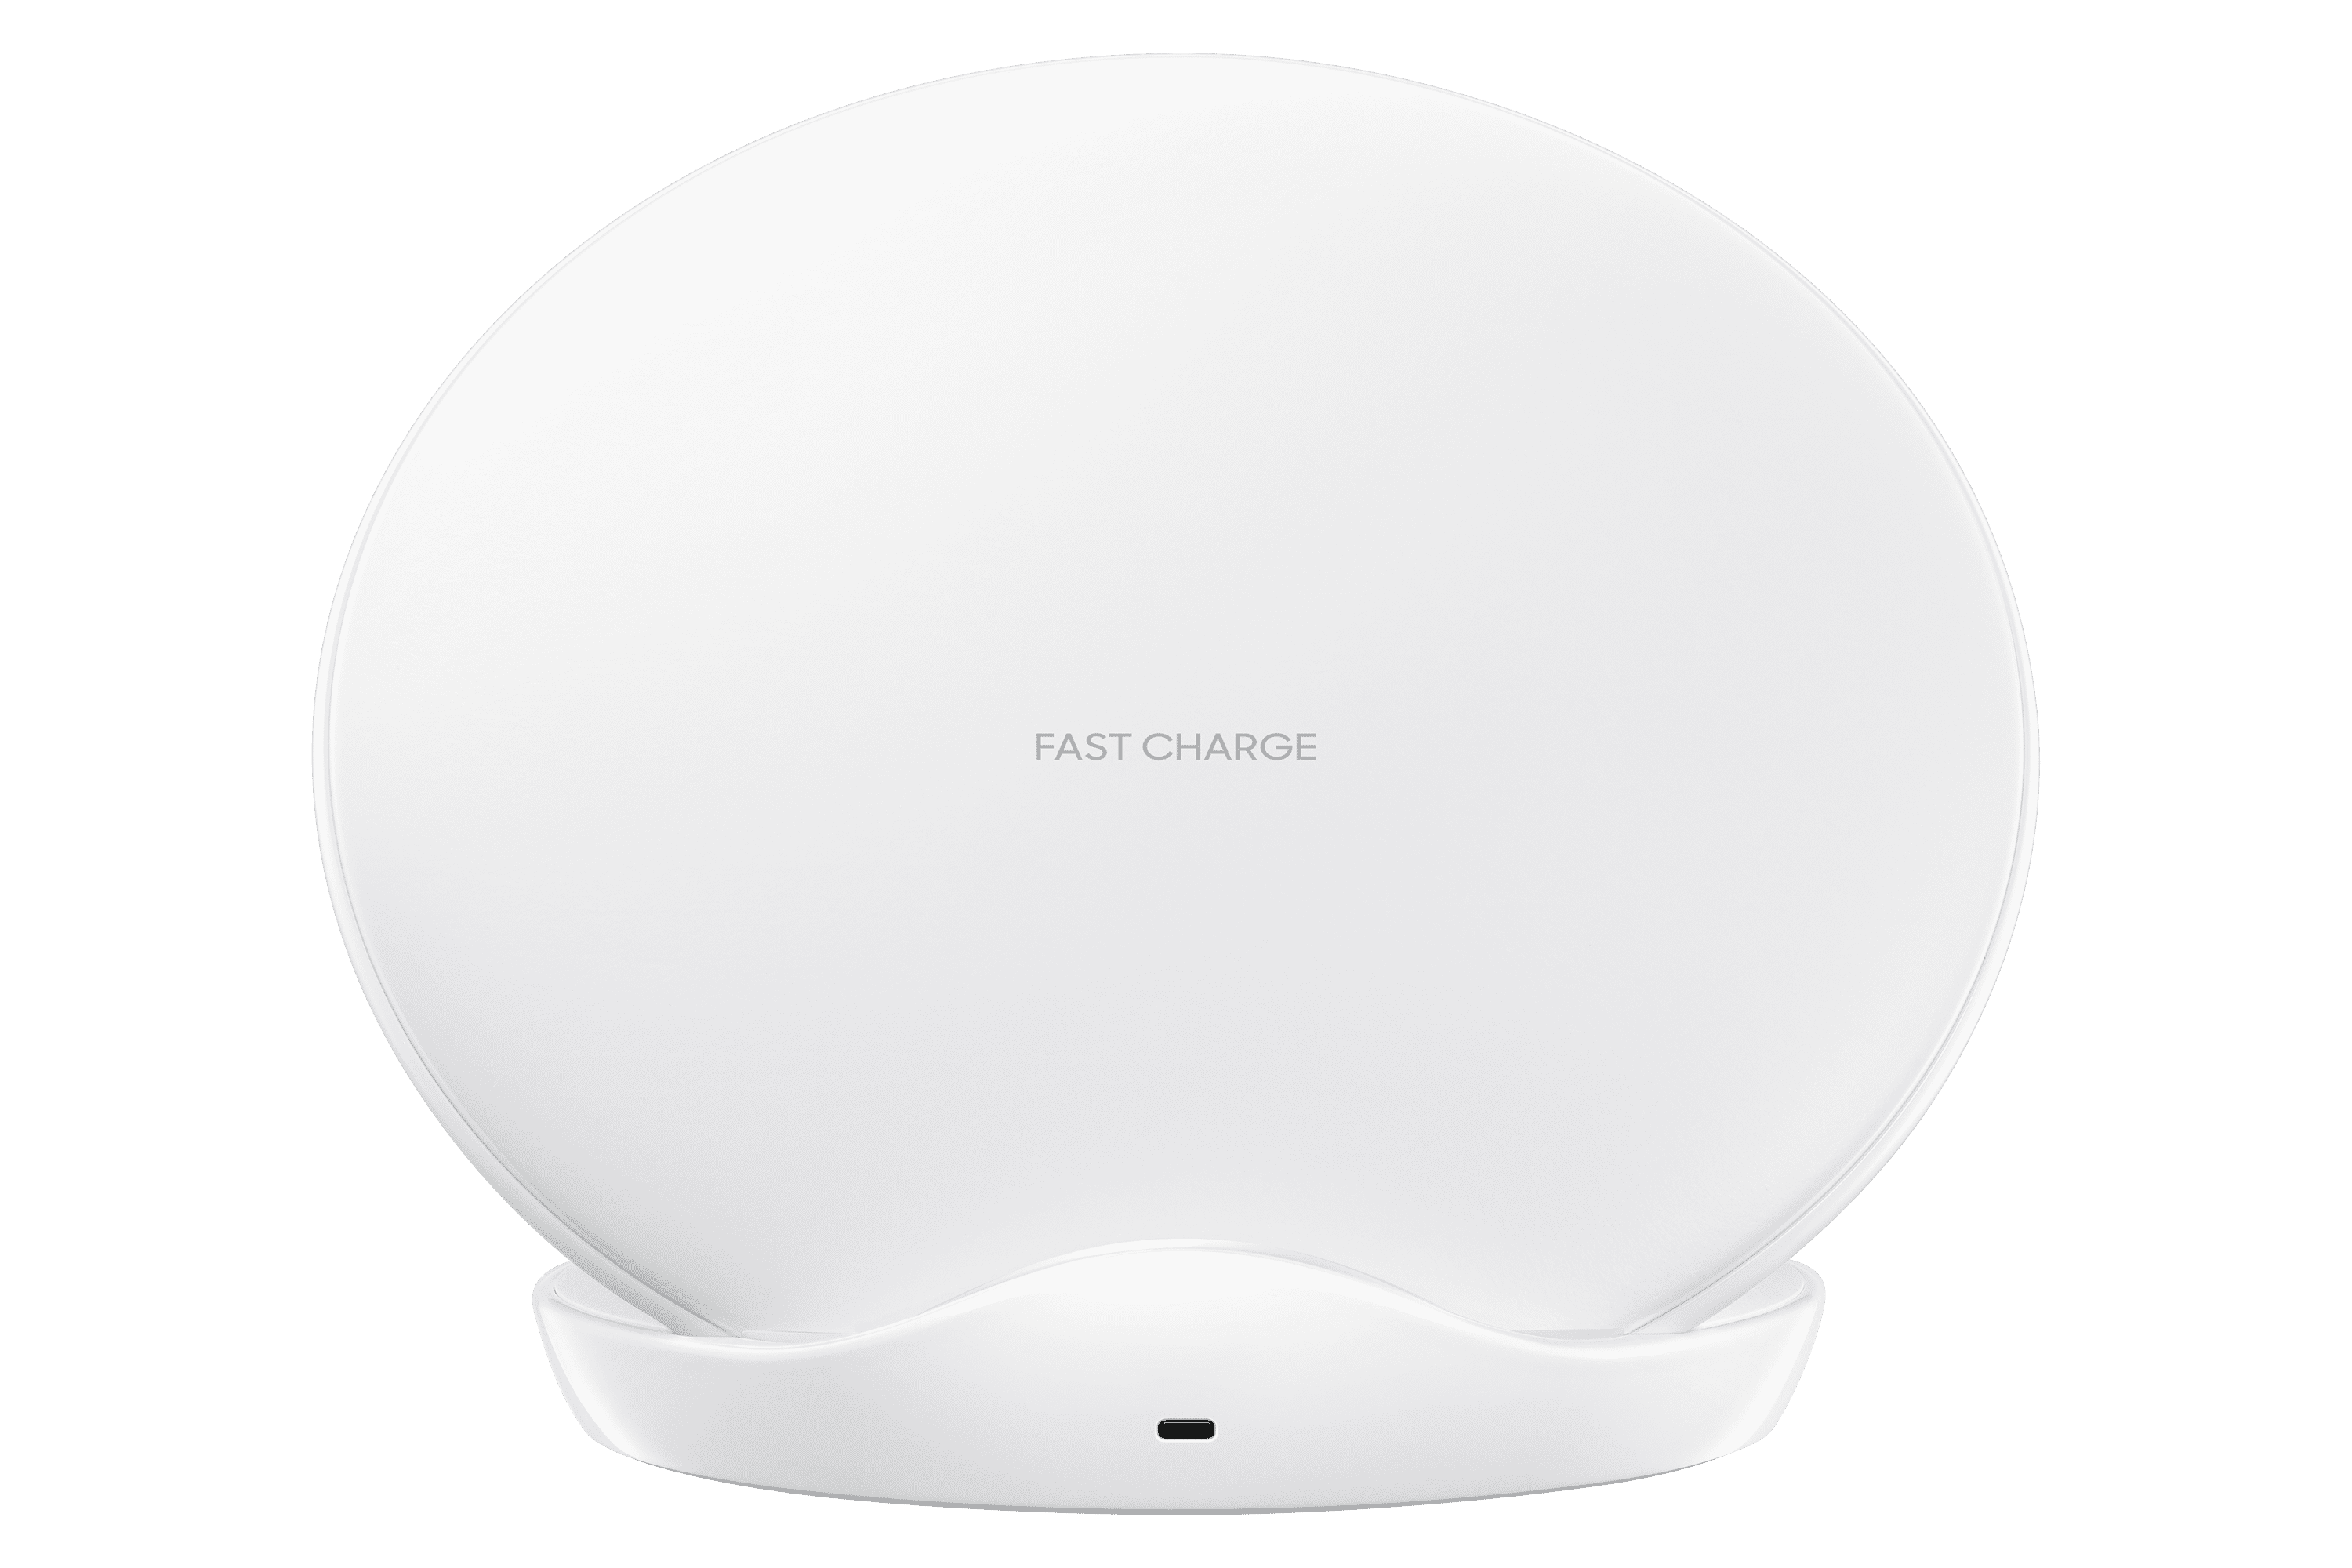 Accesorio Para El Celular Samsung Fast Charge Wireless Charging Stand - White + Samsung en VeoyCompro.net